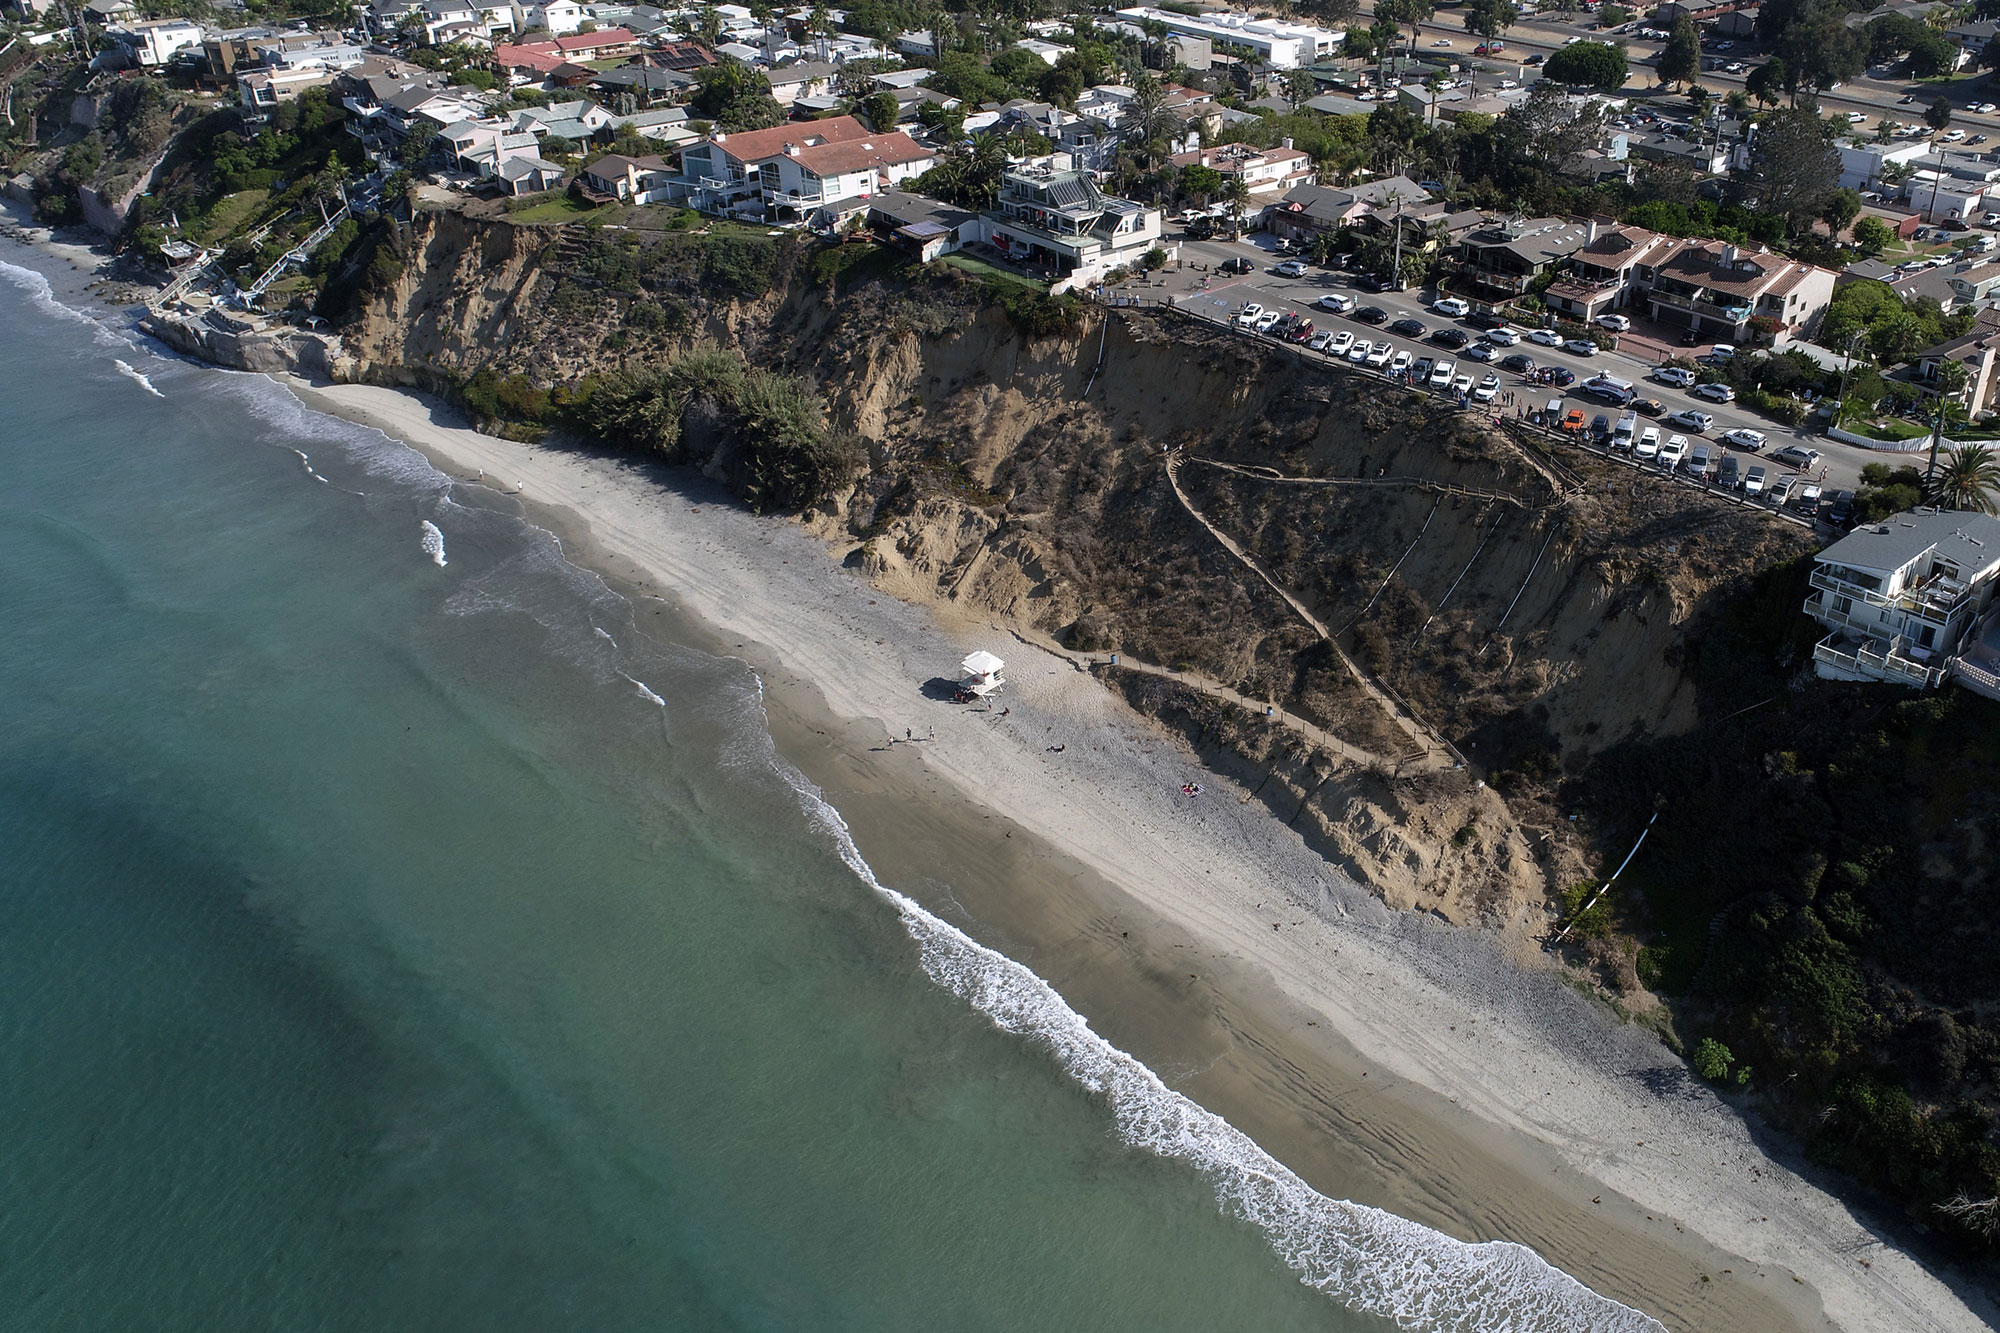 Teenager attacked by shark off Californian beach